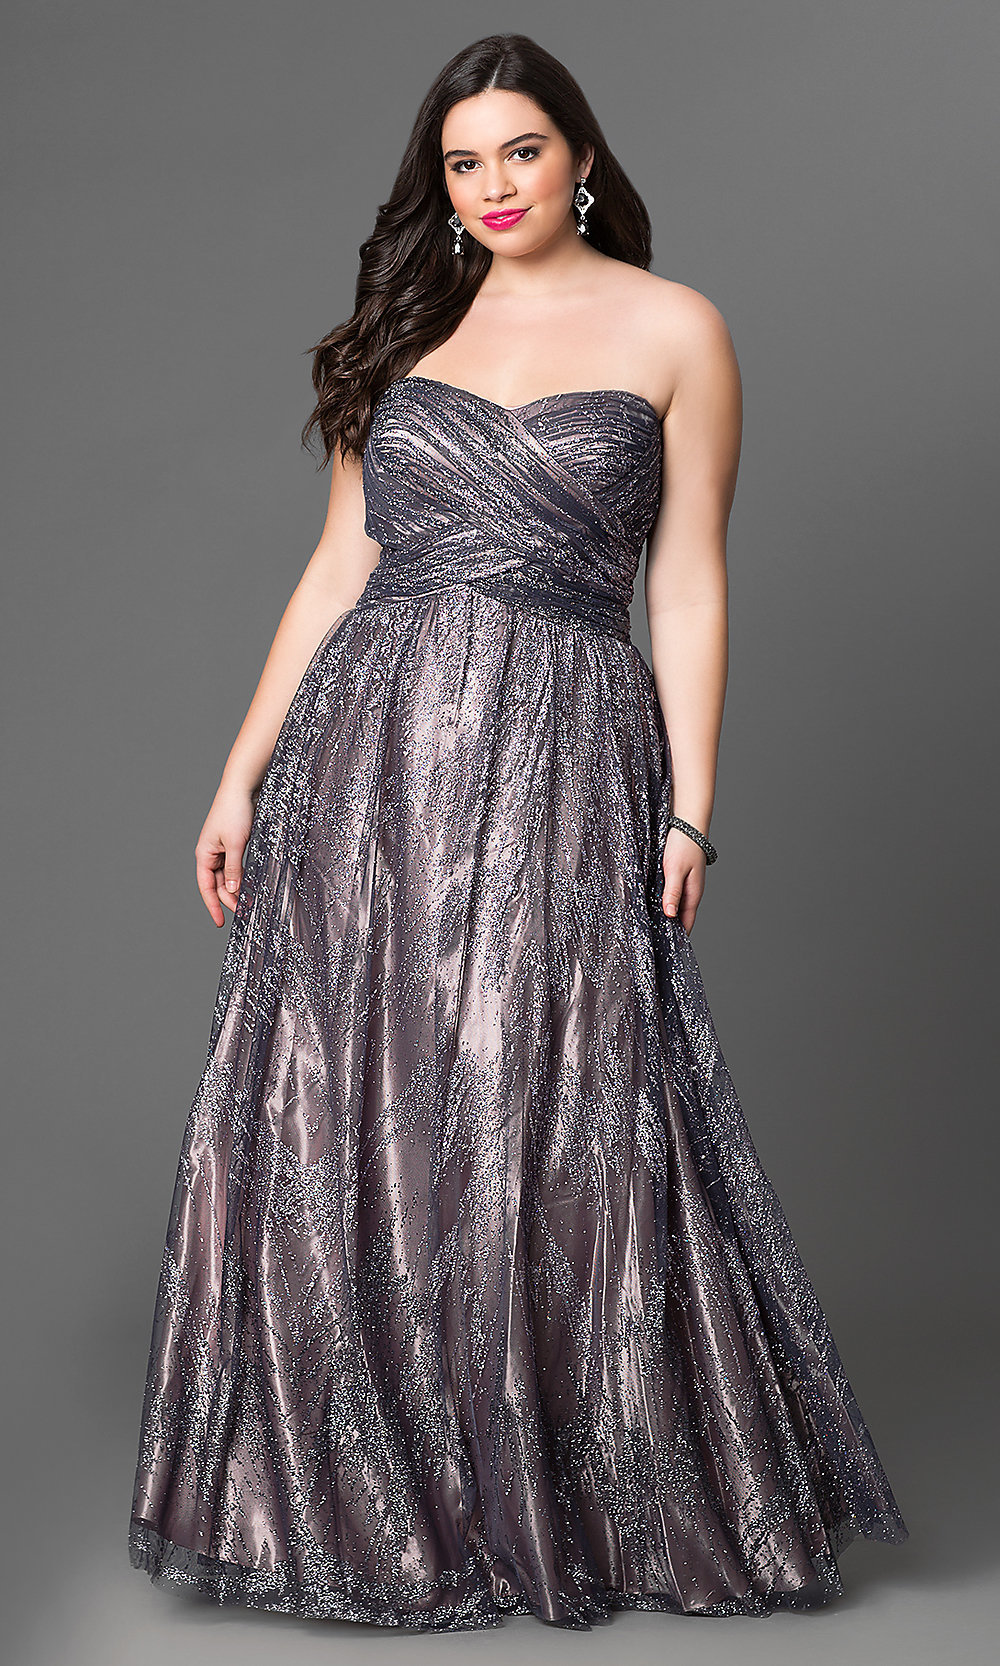 Sweetheart Metallic Plus-Size Prom Dress -PromGirl